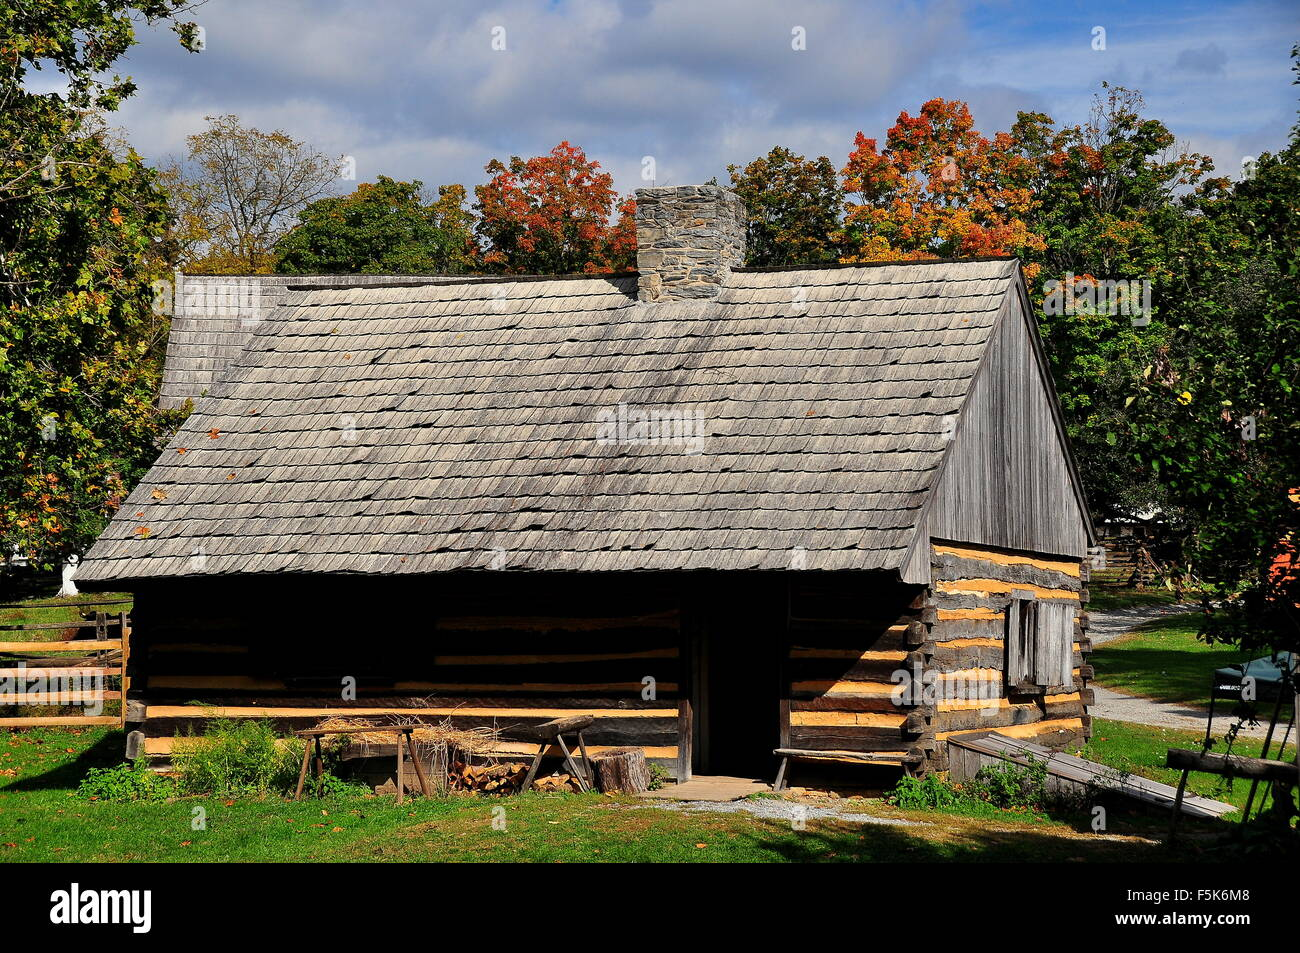 Lancaster, Pennsylvania:  Fachwerk two-room Log Cabin Farm home at the Landis Valley Village and Farm Museum * - Stock Image